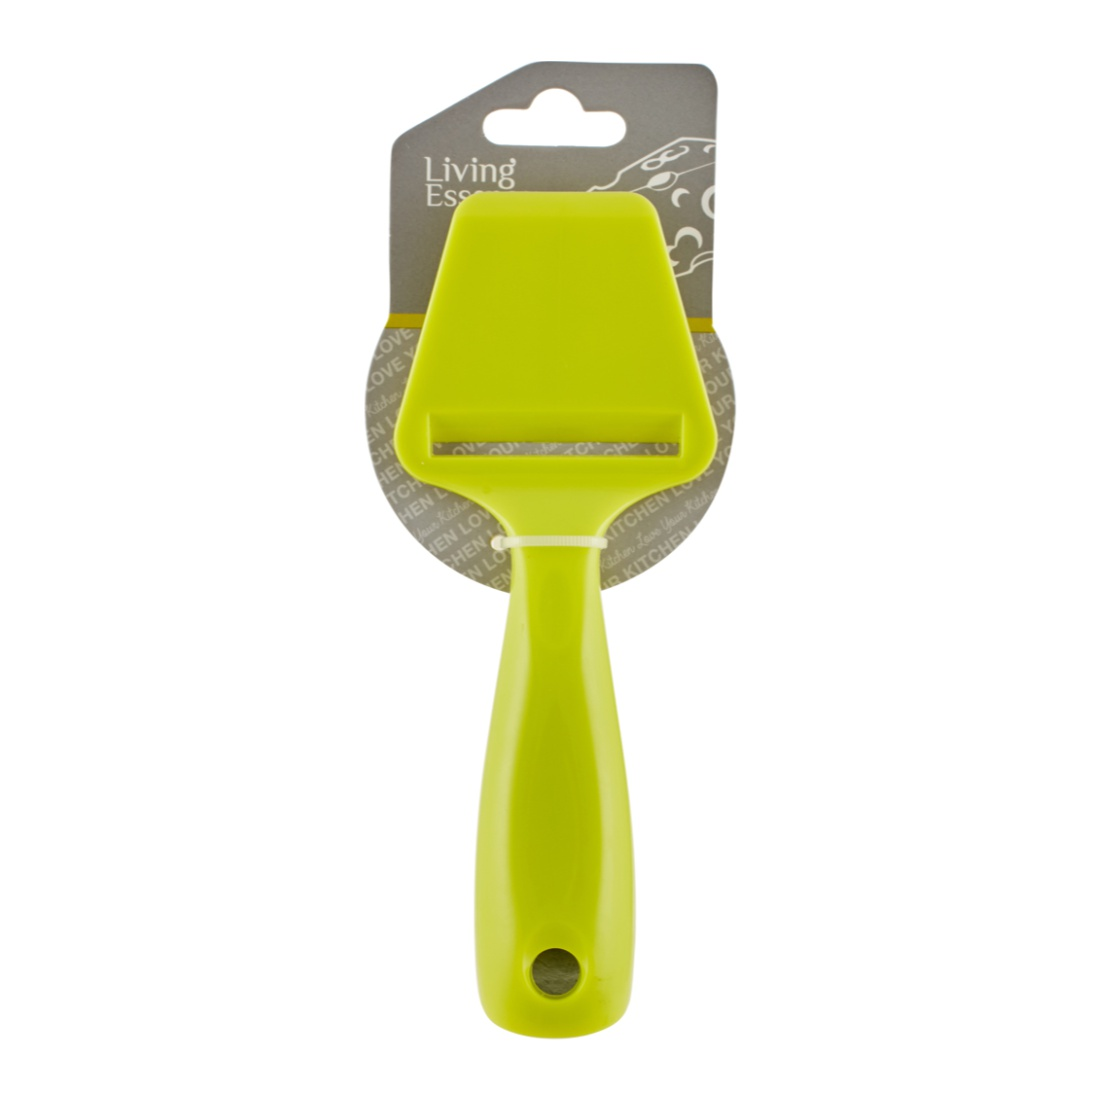 Kitchen Aid Cheese Spatula Plastic Kitchen Tools in Green Colour by Living Essence